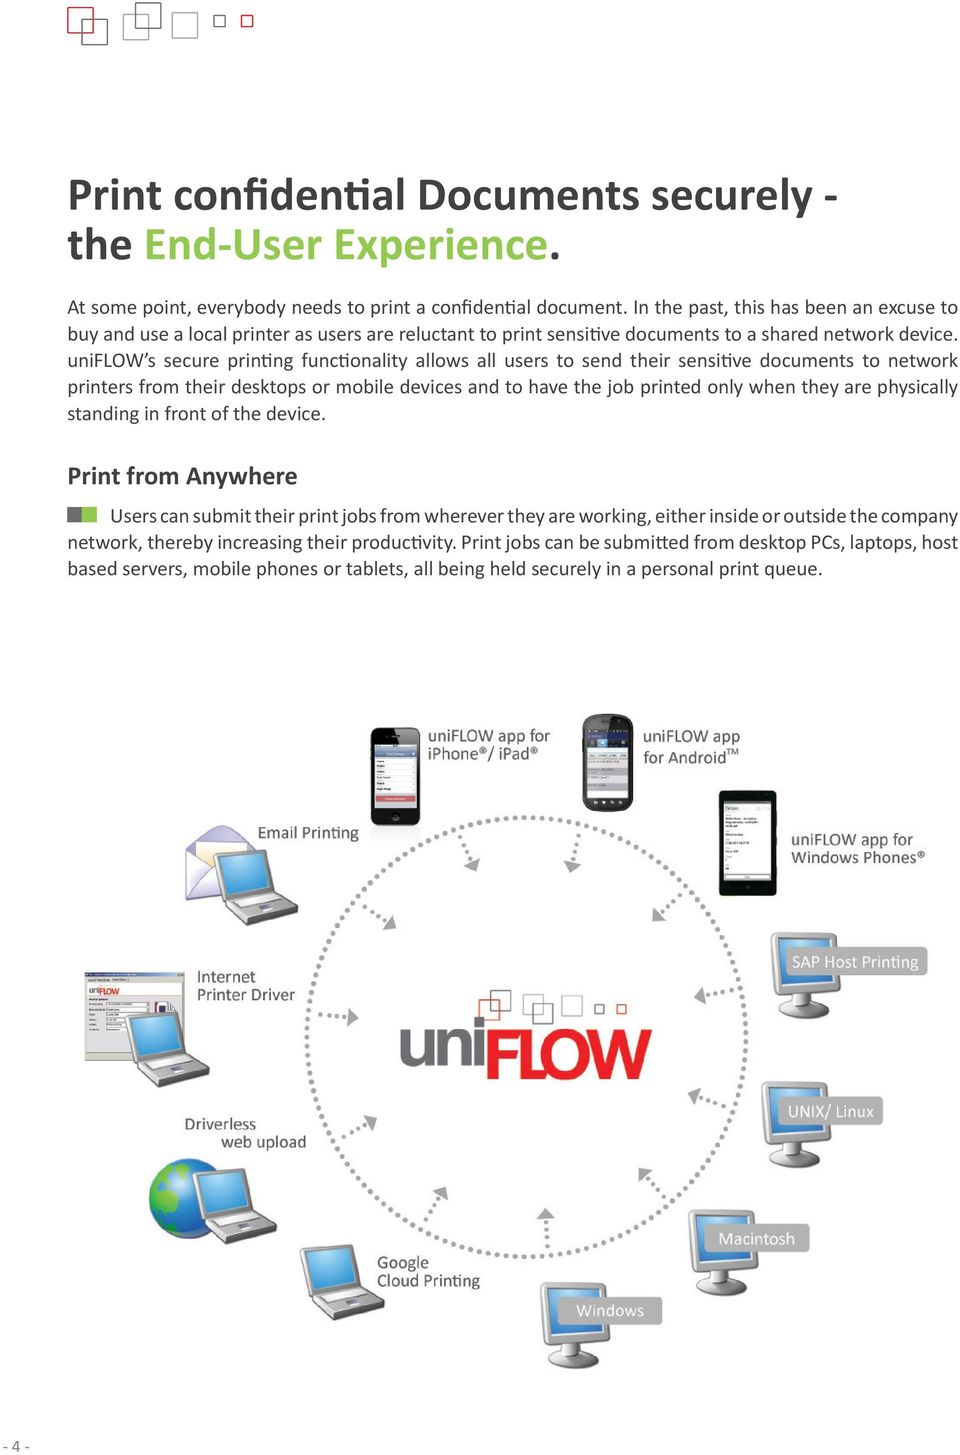 uniflow s secure printing functionality allows all users to send their sensitive documents to network printers from their desktops or mobile devices and to have the job printed only when they are